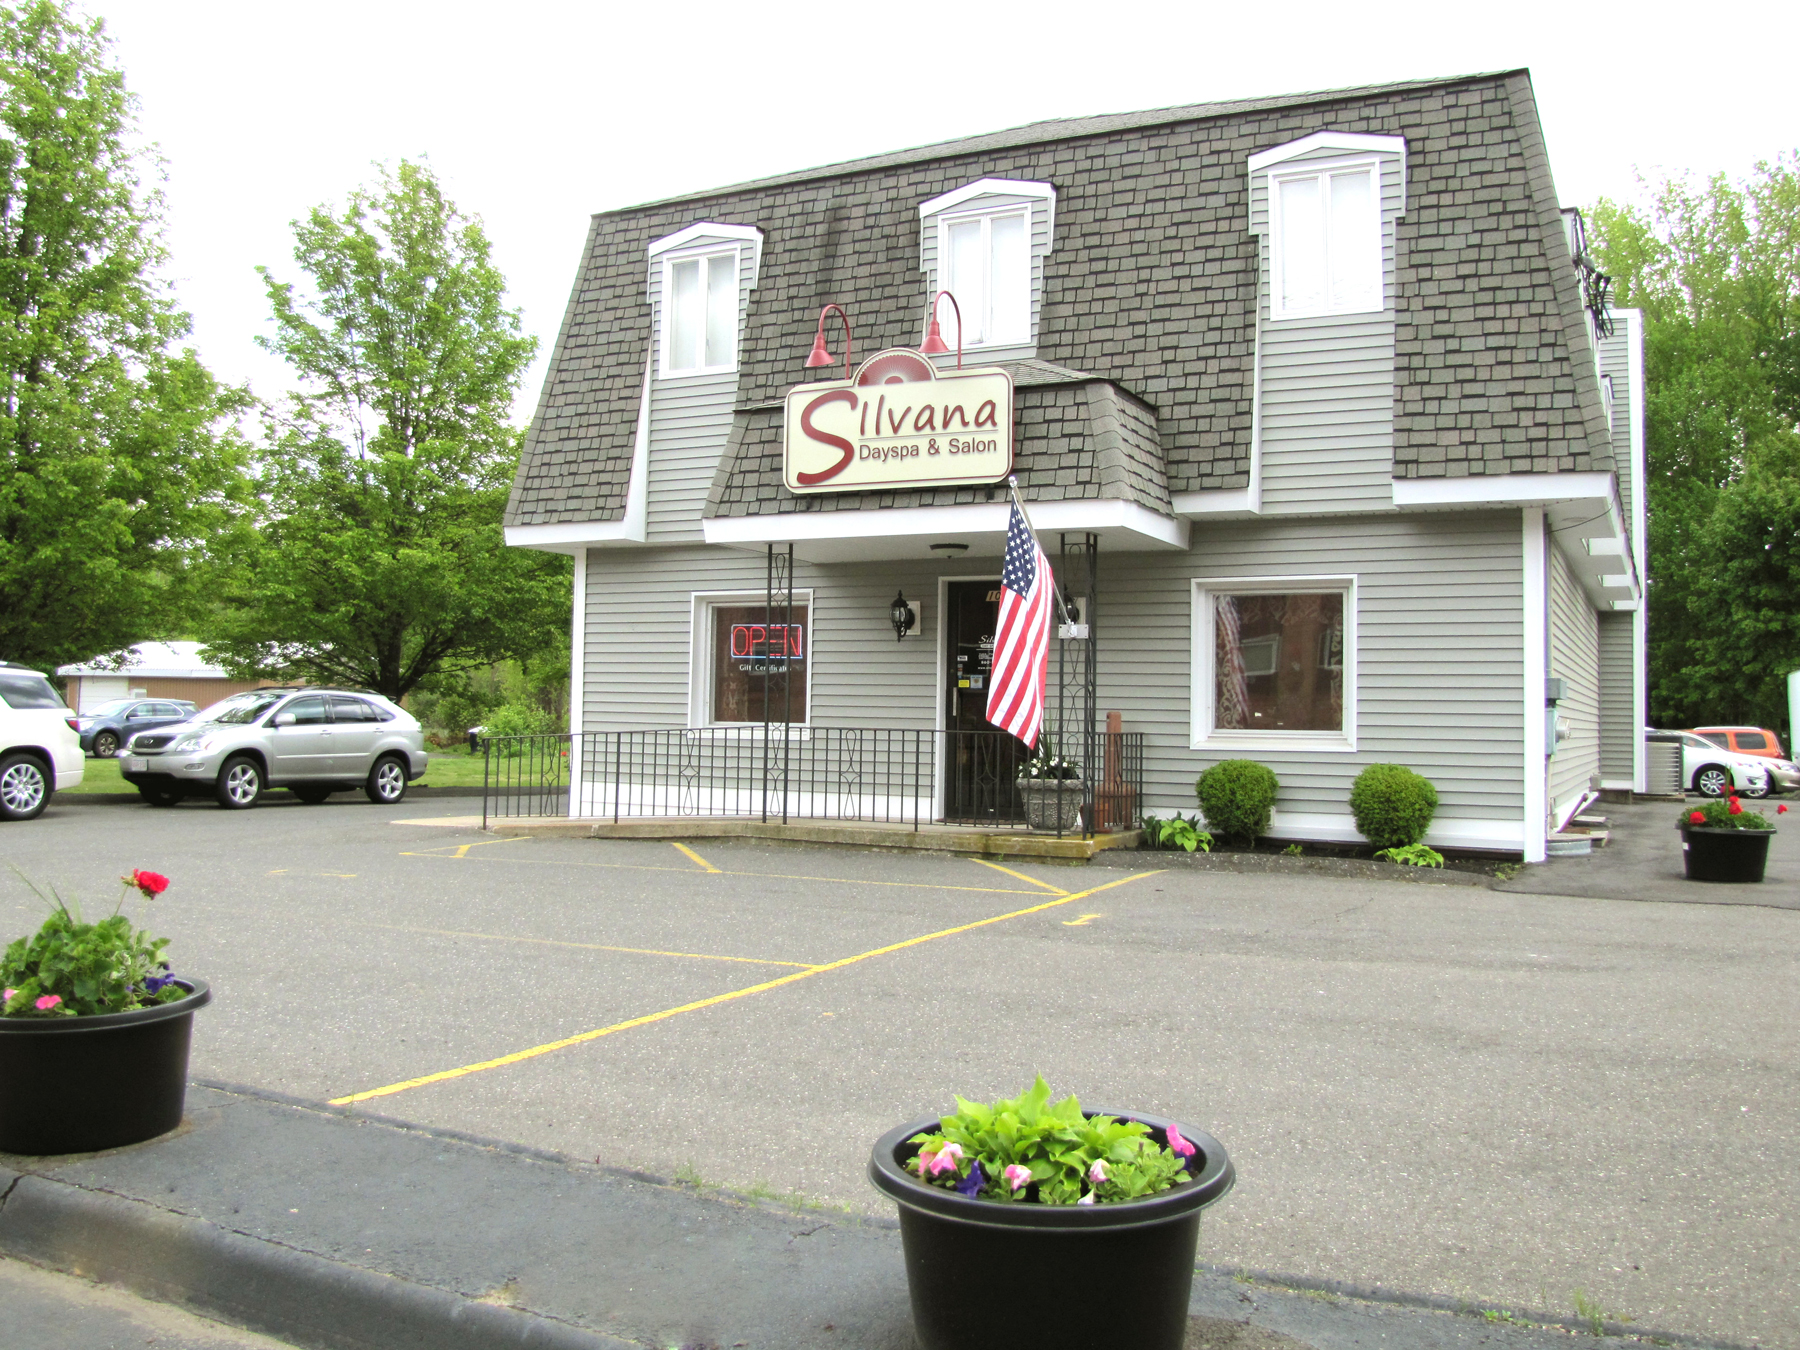 day spa Bristol, CT - Silvana Dayspa and Salon